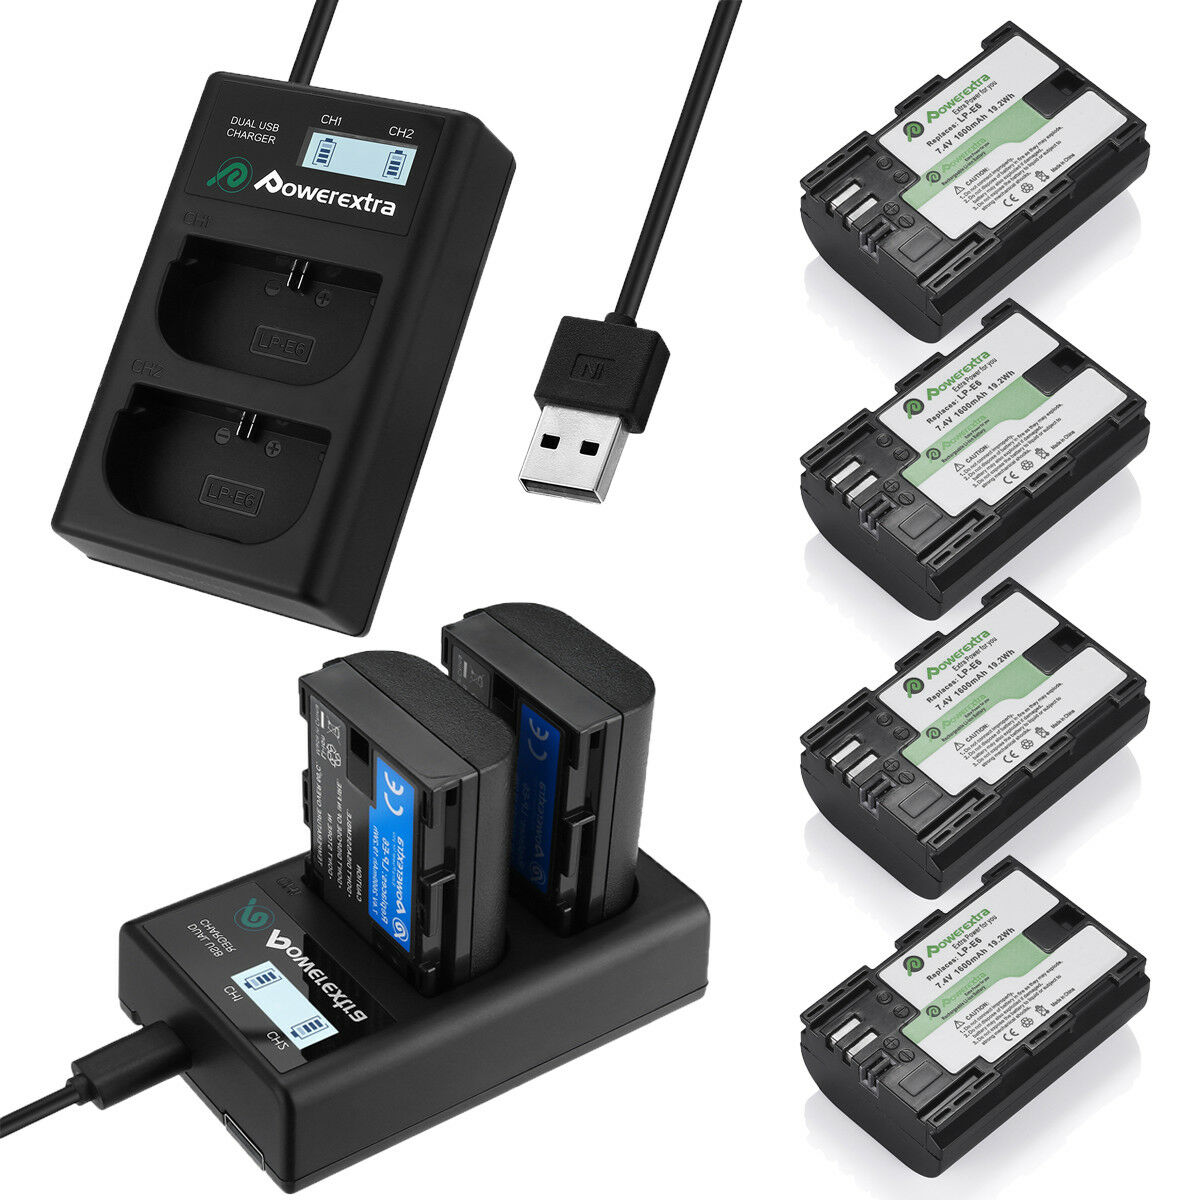 Купить Powerextra LP-E6 battery + Charger - LP-E6 Battery + Dual Charger for Canon EOS 80D, 6D, 7D, 70D, 60D, 5D Mark II III